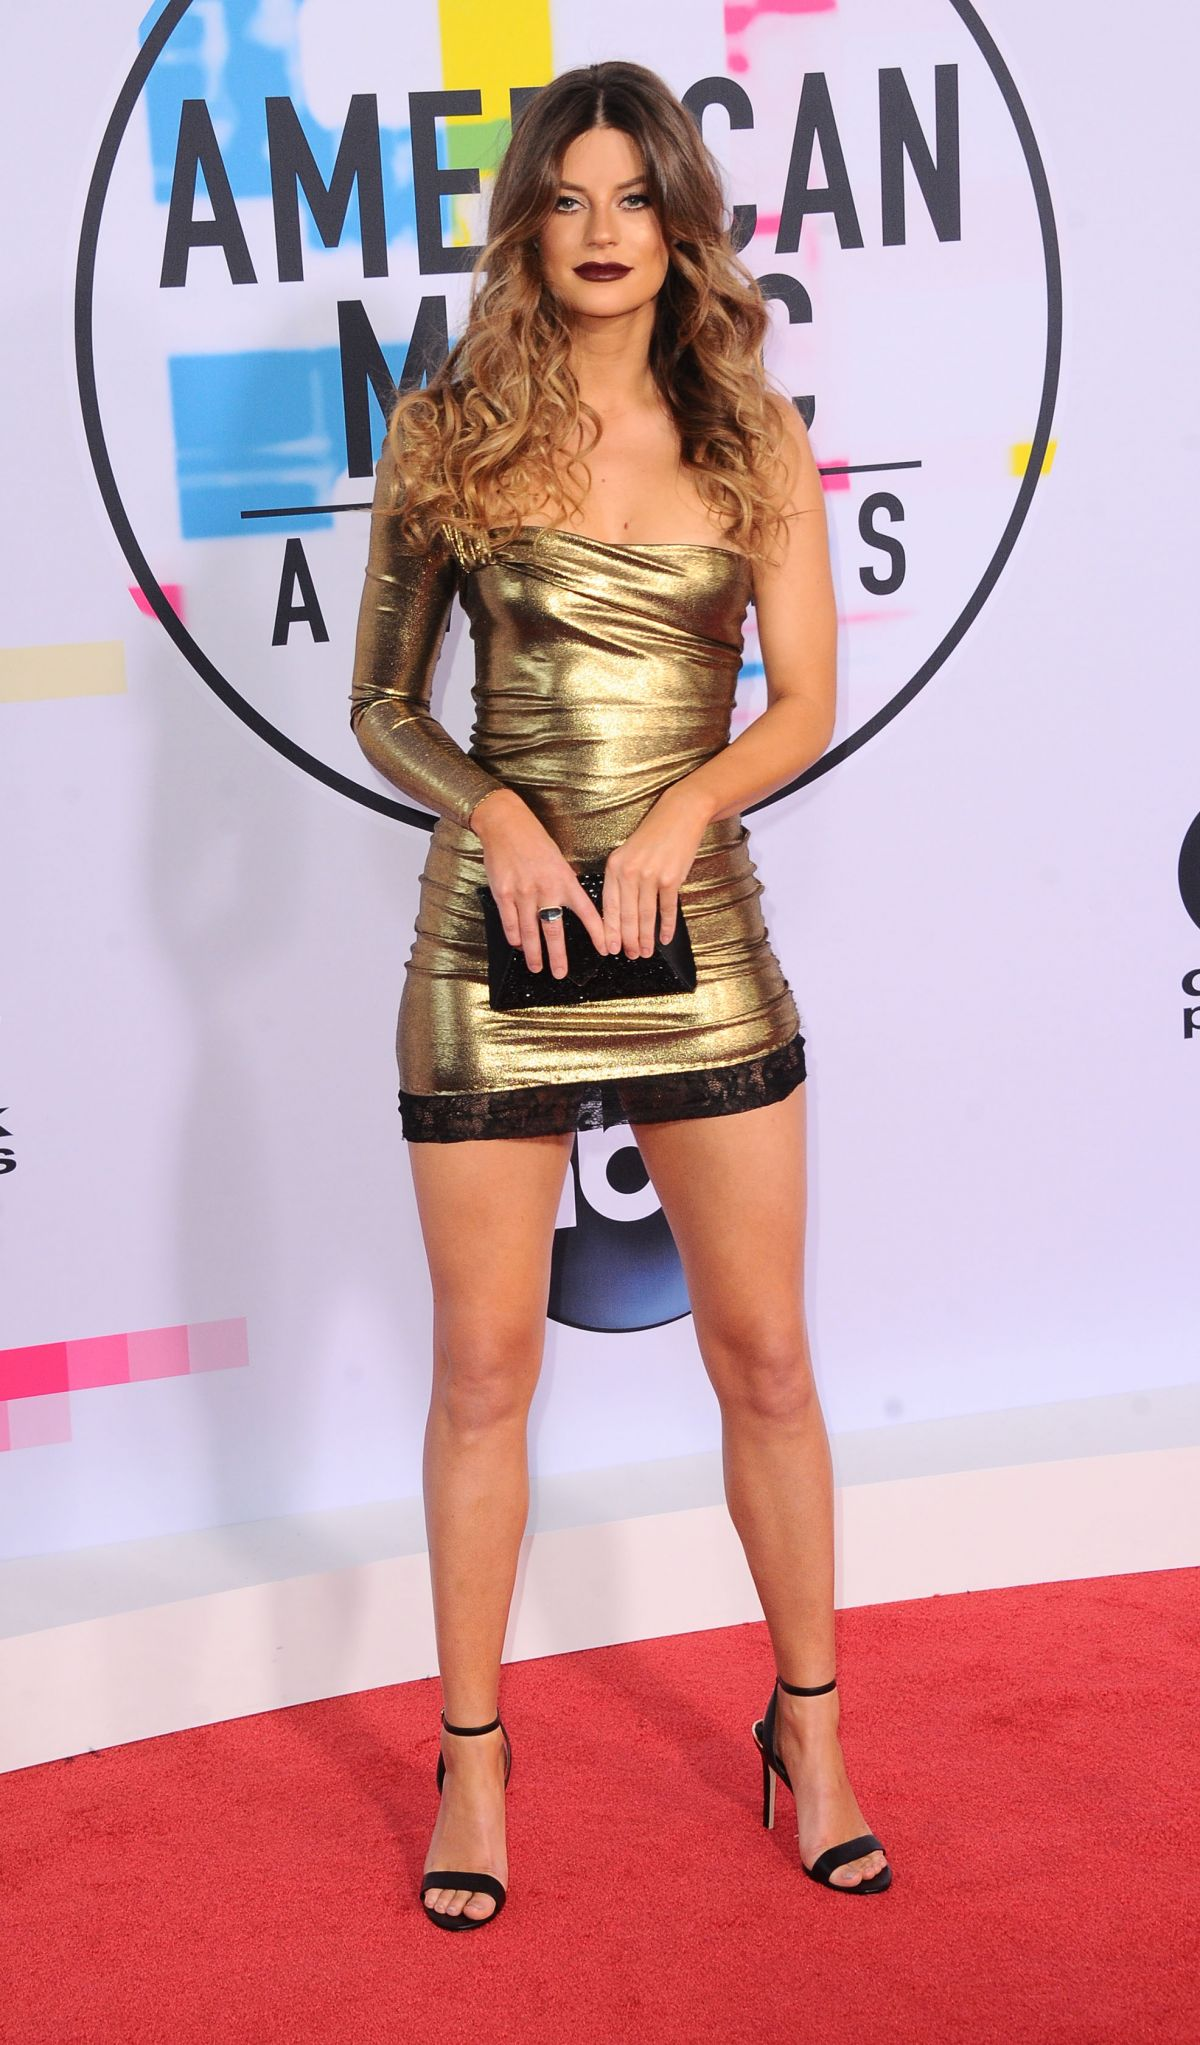 ¿Cuánto mide Hannah Stocking? - Real height Hannah-stocking-at-american-music-awards-2017-at-microsoft-theater-in-los-angeles-11-19-2017-5